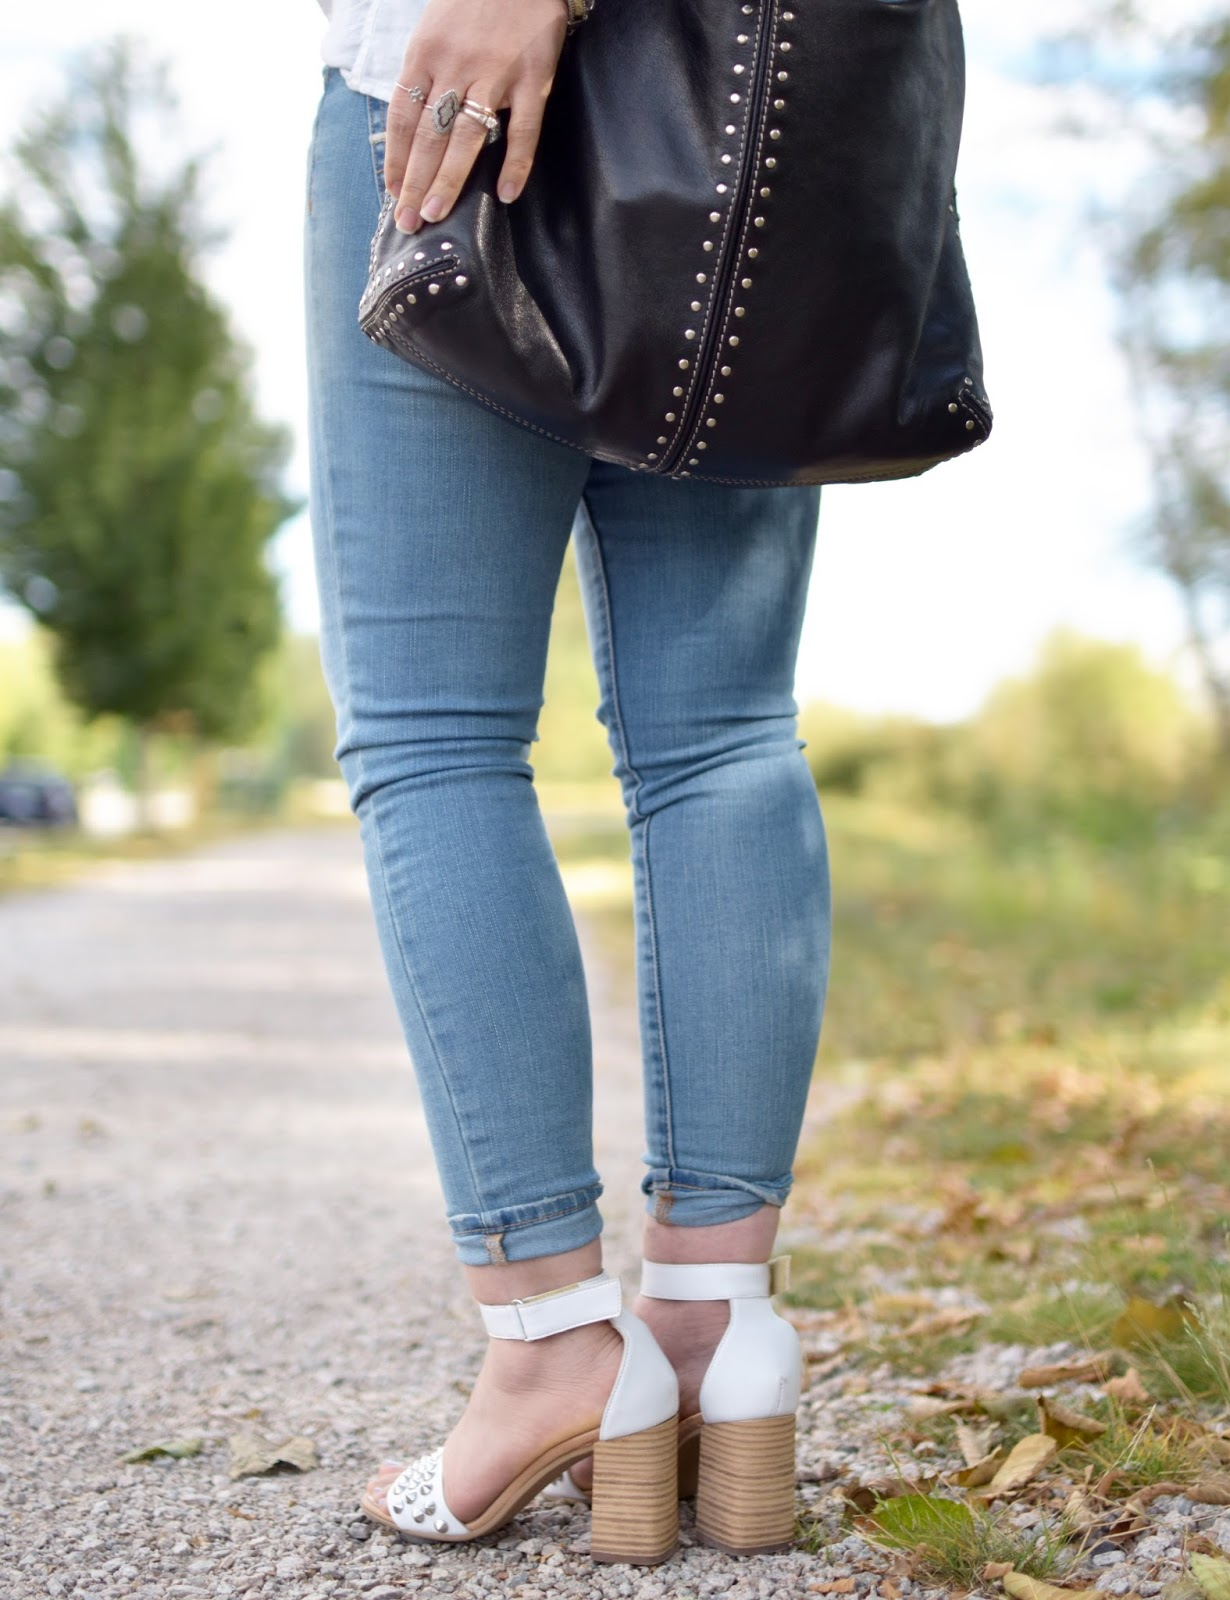 skinny jeans, white block-heeled sandals, studded Michael Kors bag